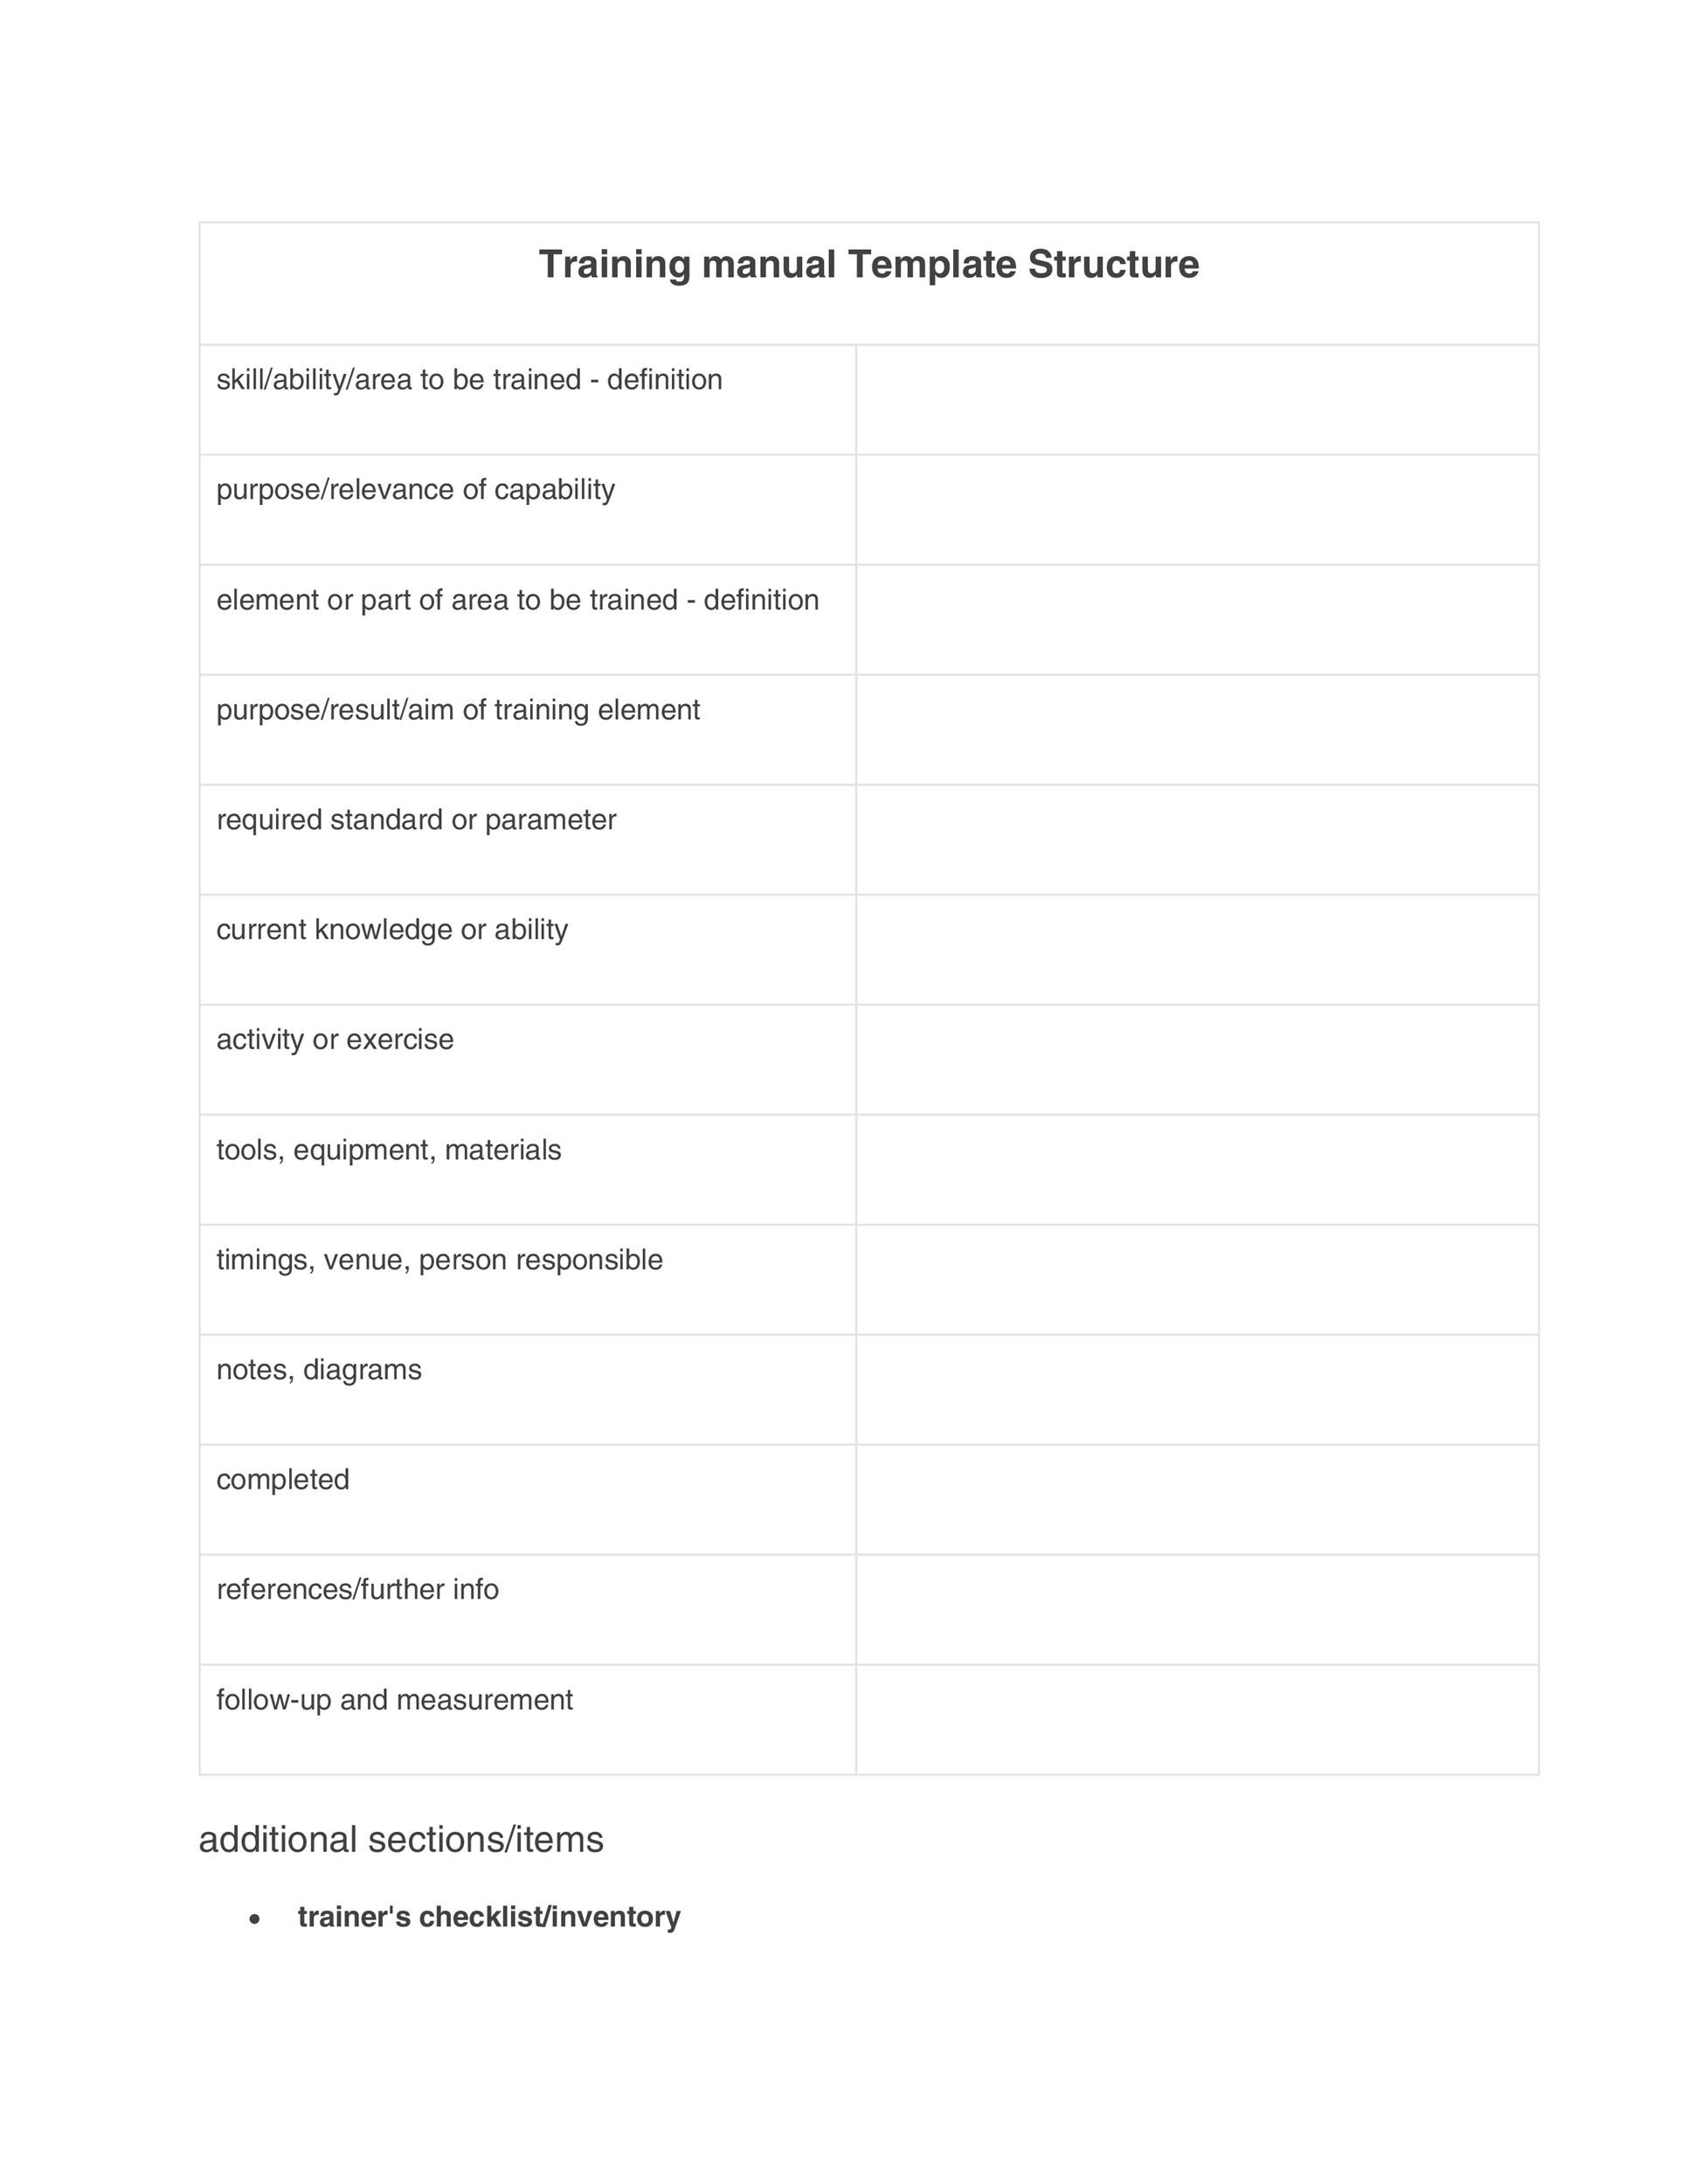 Training Manual 40 Free Templates Examples in MS Word – Training Manual Template Word